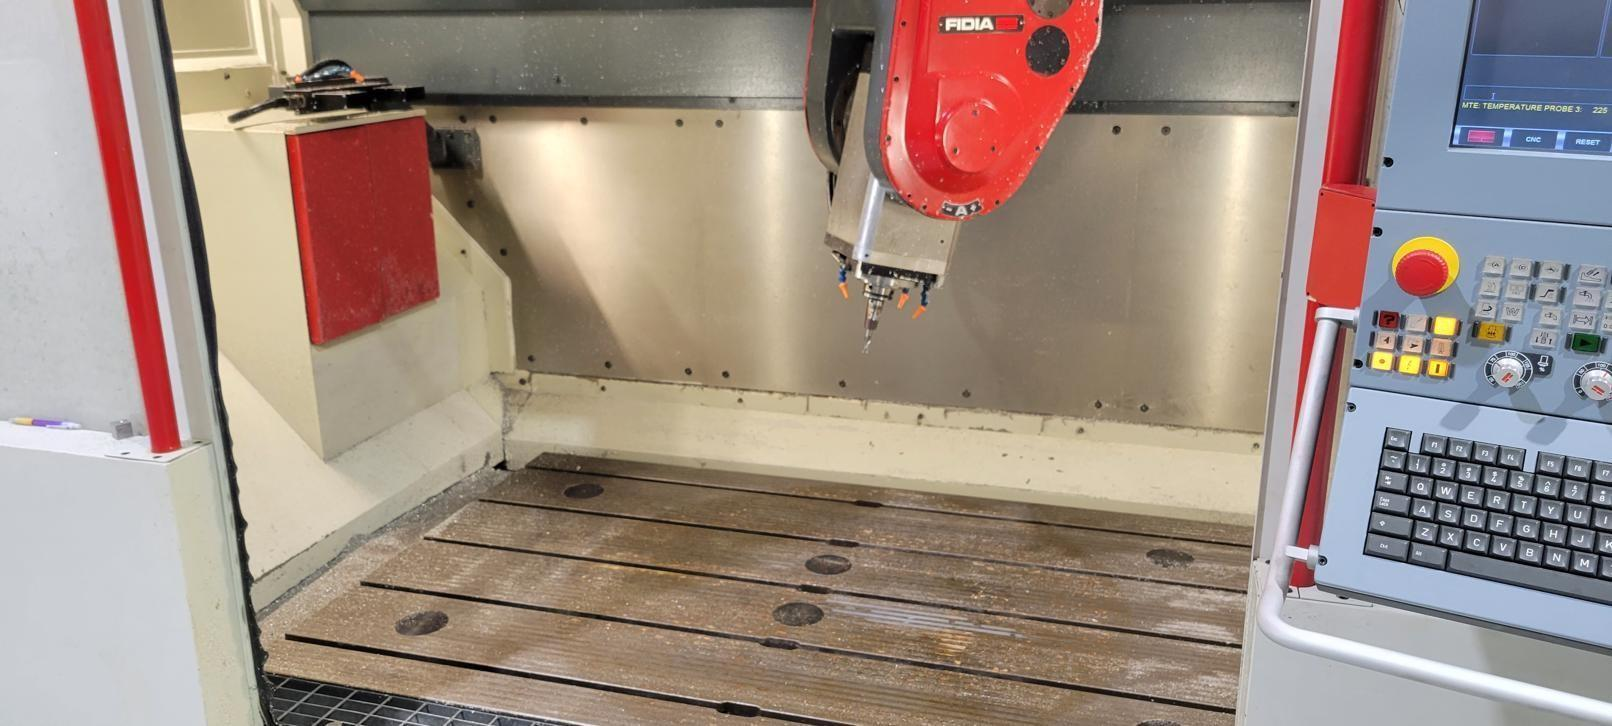 FIDIA K199 5-AXIS CNC VERTICAL MACHINING CENTER. STOCK # 0207021